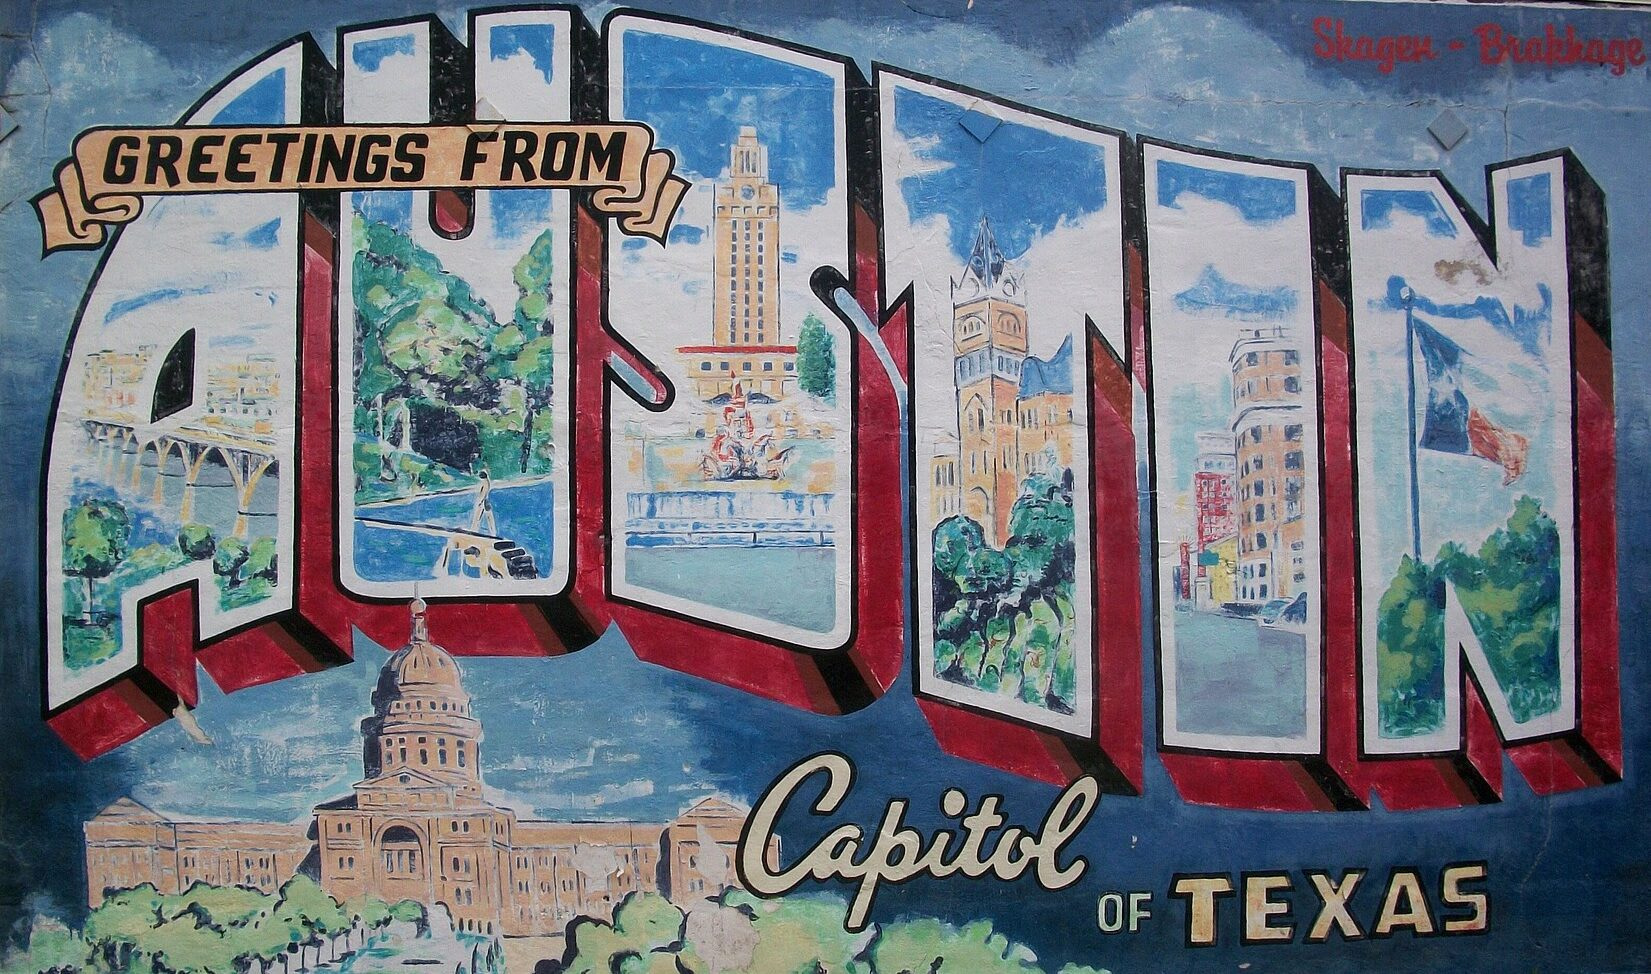 Greetings from Austin, Texas mural